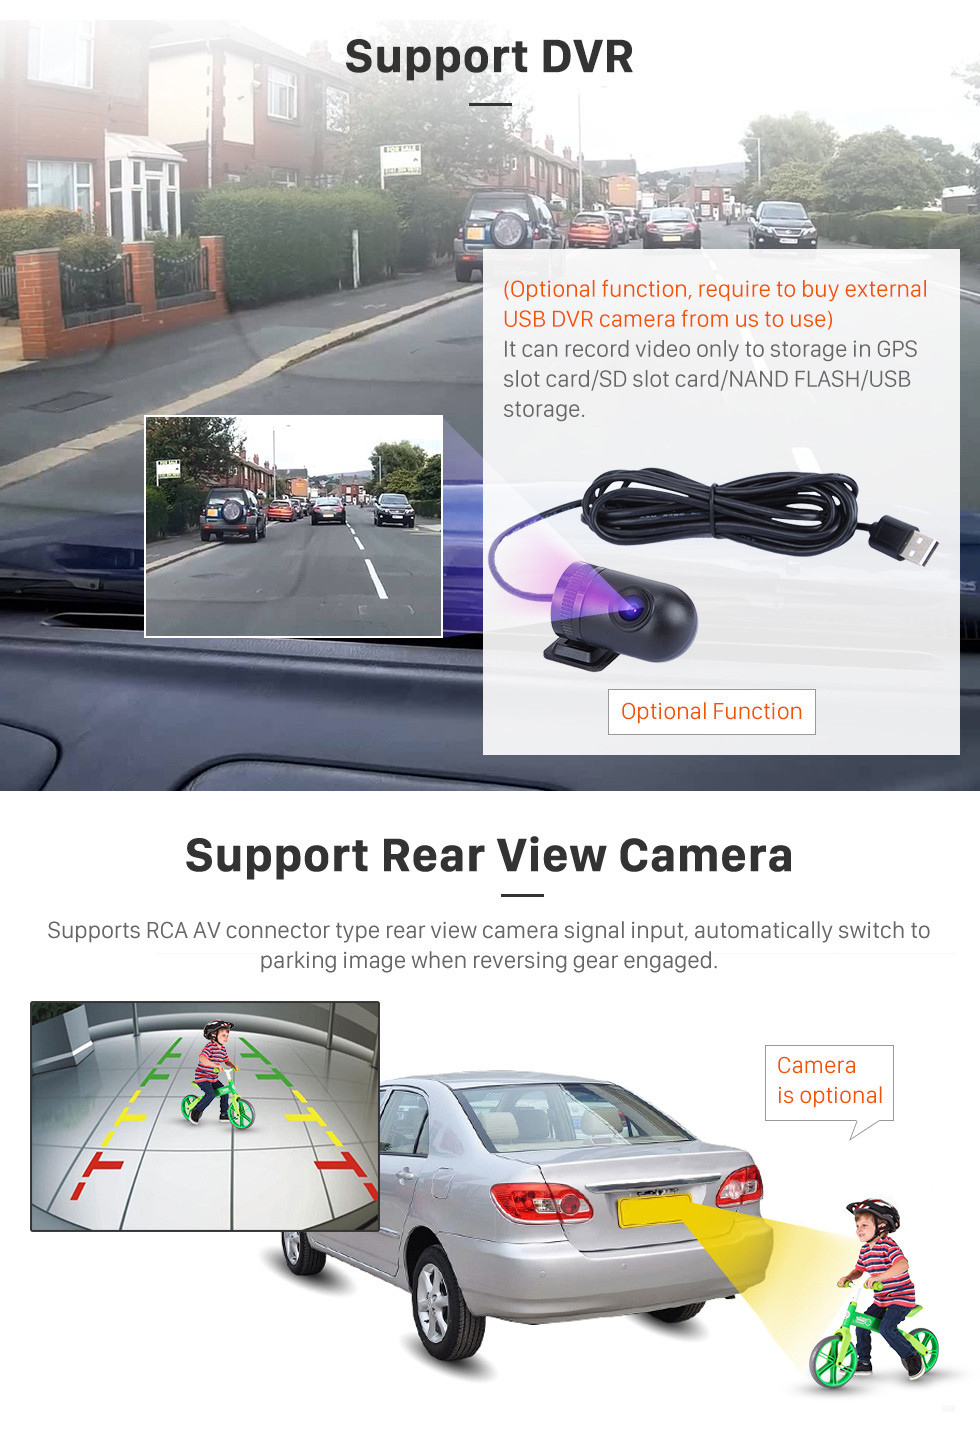 Seicane 9 Inch For 2007 2008 2009 2010 COROLLA Android 10.0 Touch Screen radio Bluetooth GPS Navigation system For DVR OBD II 3G/4G WiFi Rear camera Steering Wheel Control IPS Full Screen View